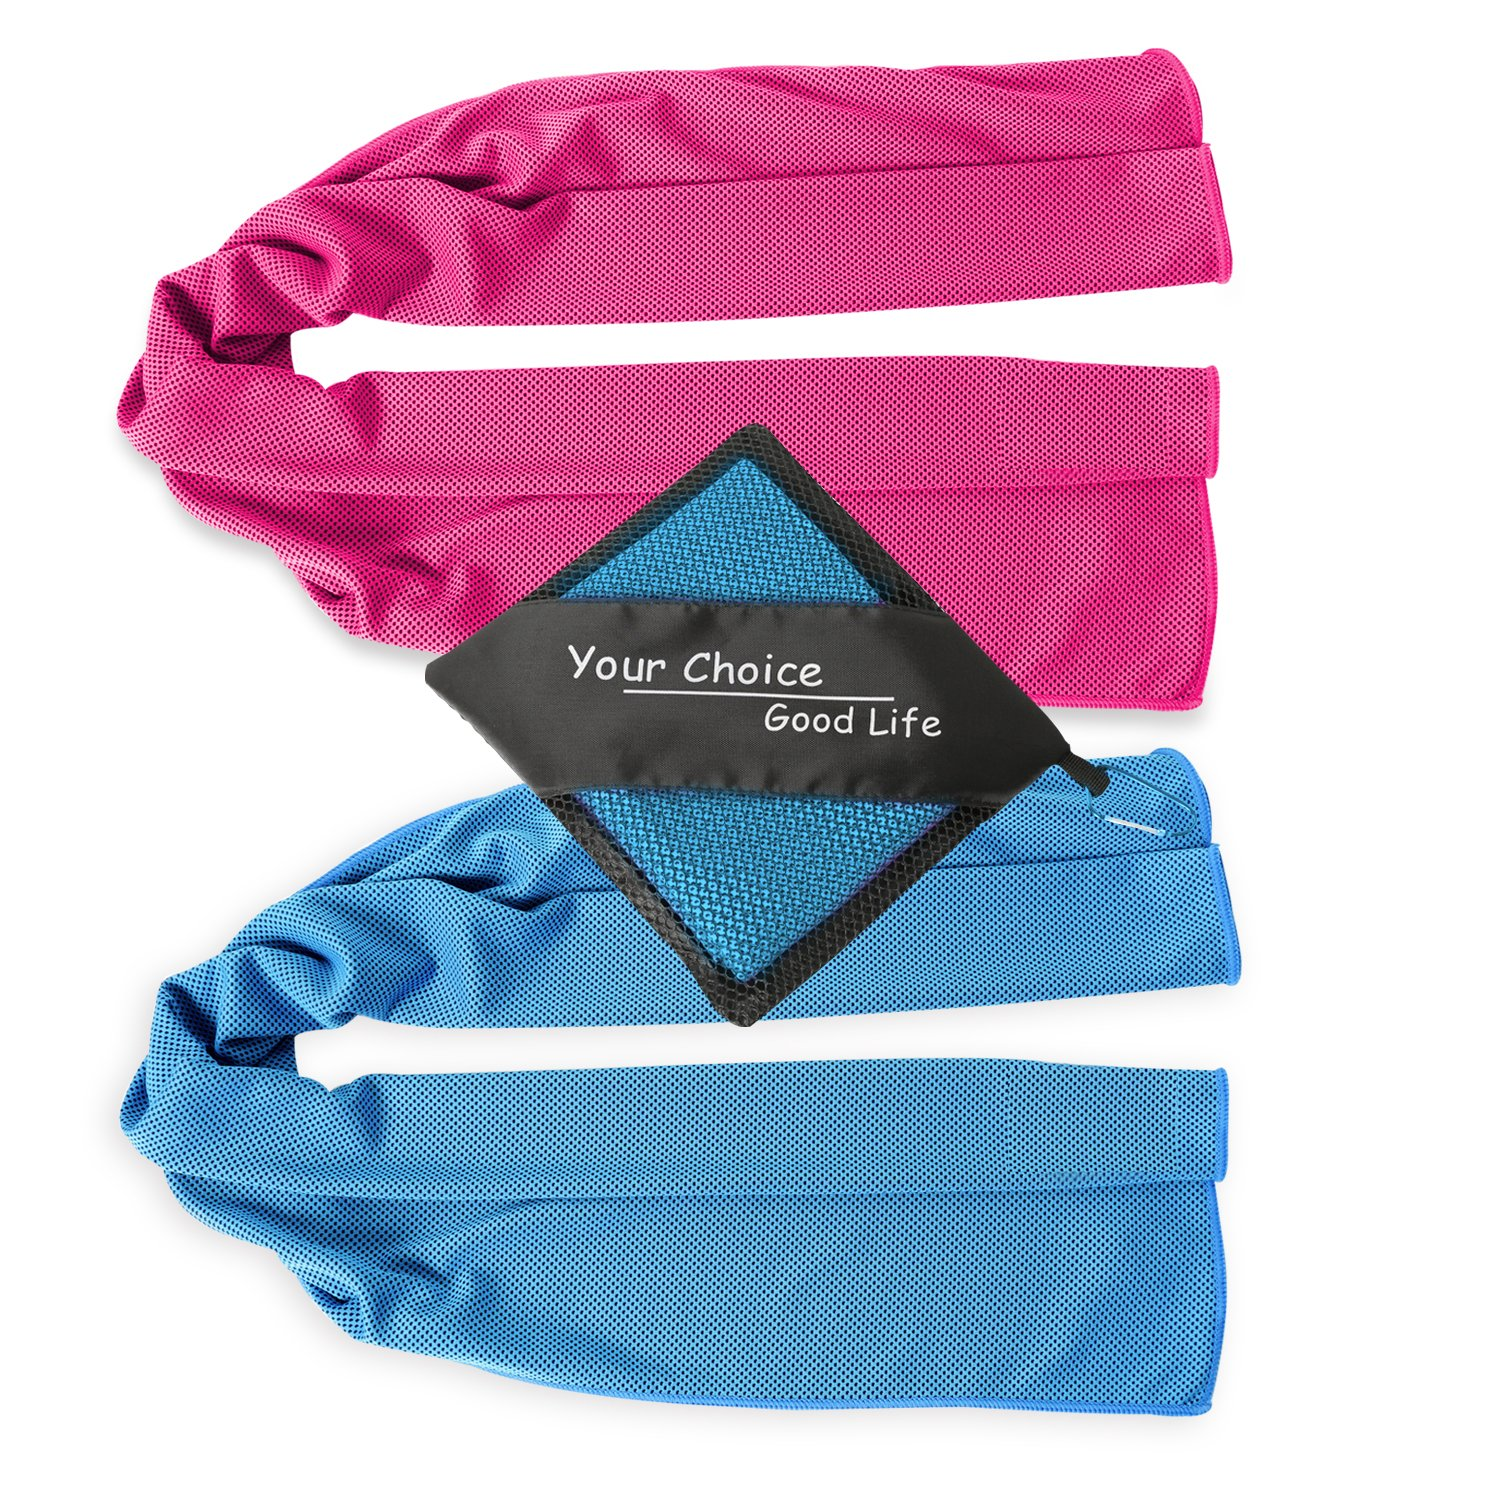 Your Choice Cooling Towels - 2 Pack Cooling Neck Towel - Instant Chill Towels for Yoga Gym Workout Fitness Sports and Outdoors - Blue and Rose Red 12 x 40 Inch